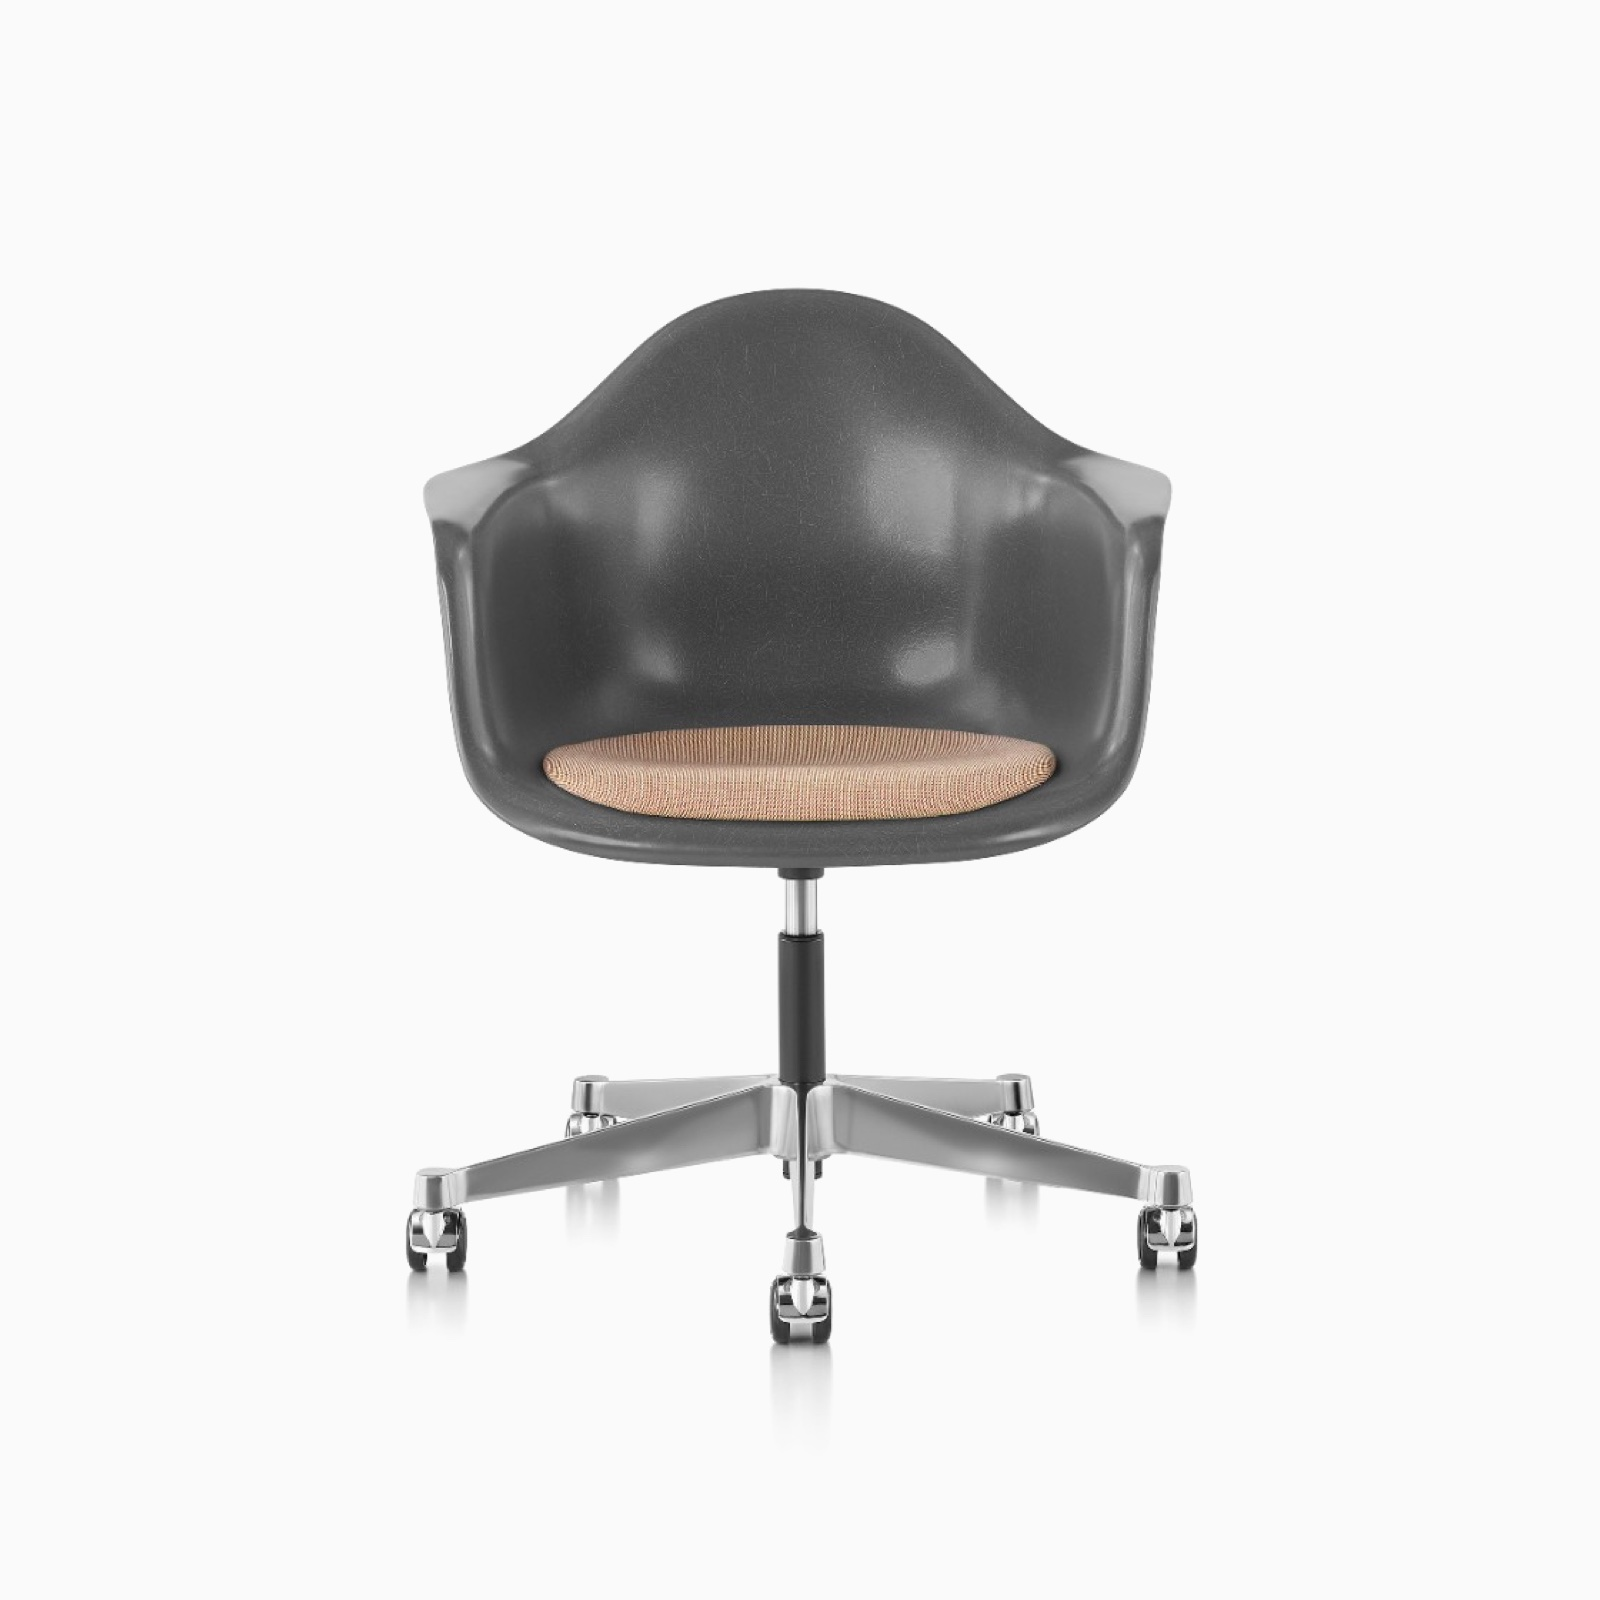 An Eames Task Chair with an Elephant Hide Grey Shell.